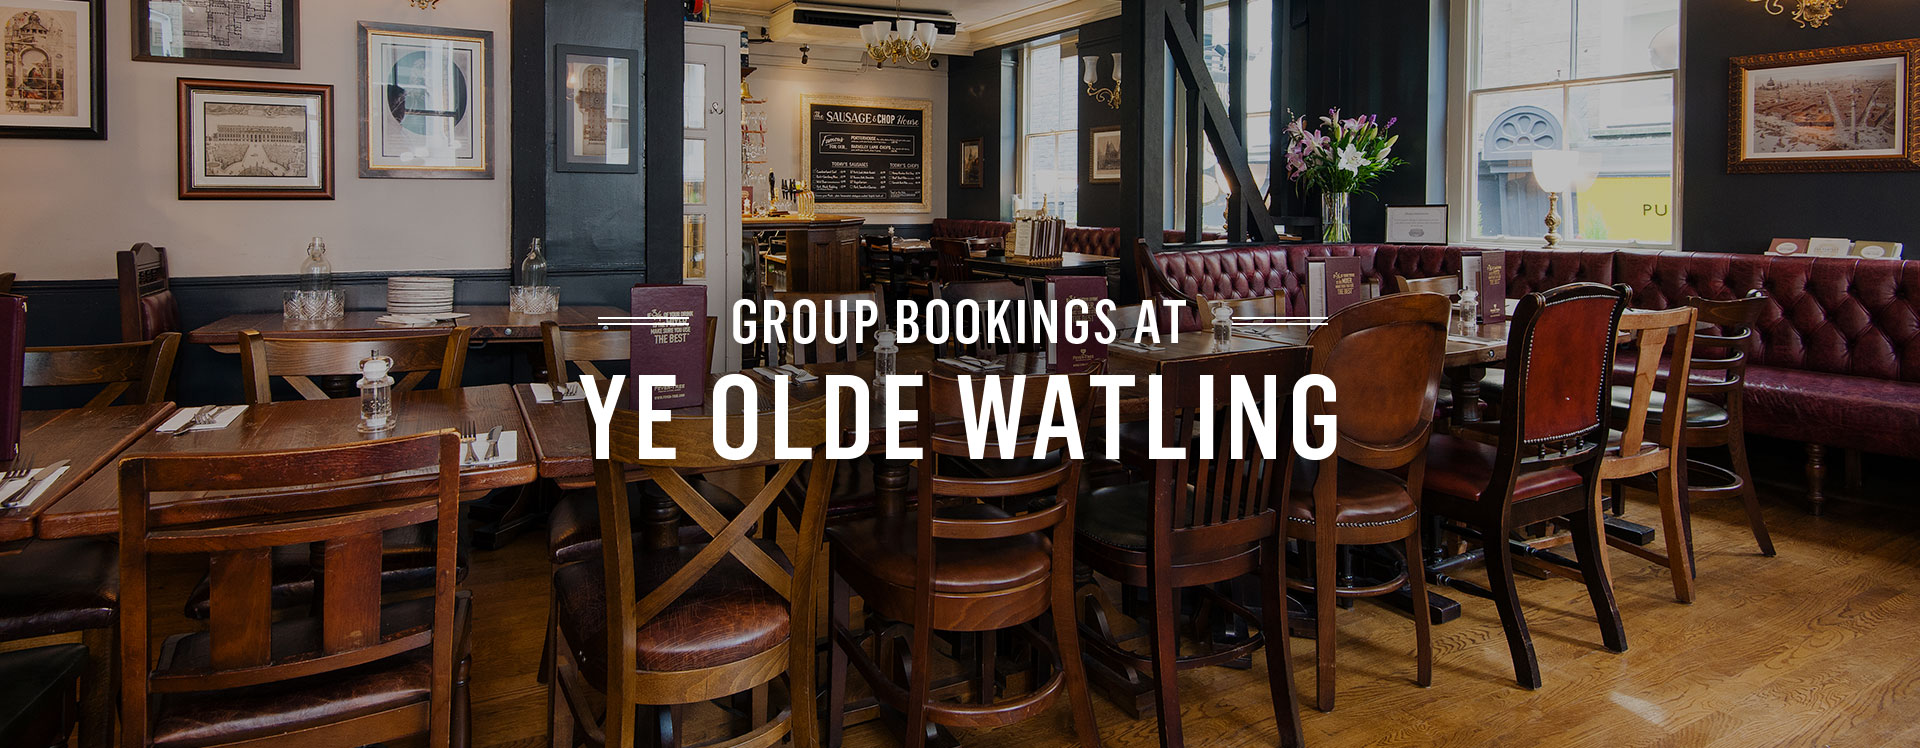 Group Bookings at Ye Olde Watling